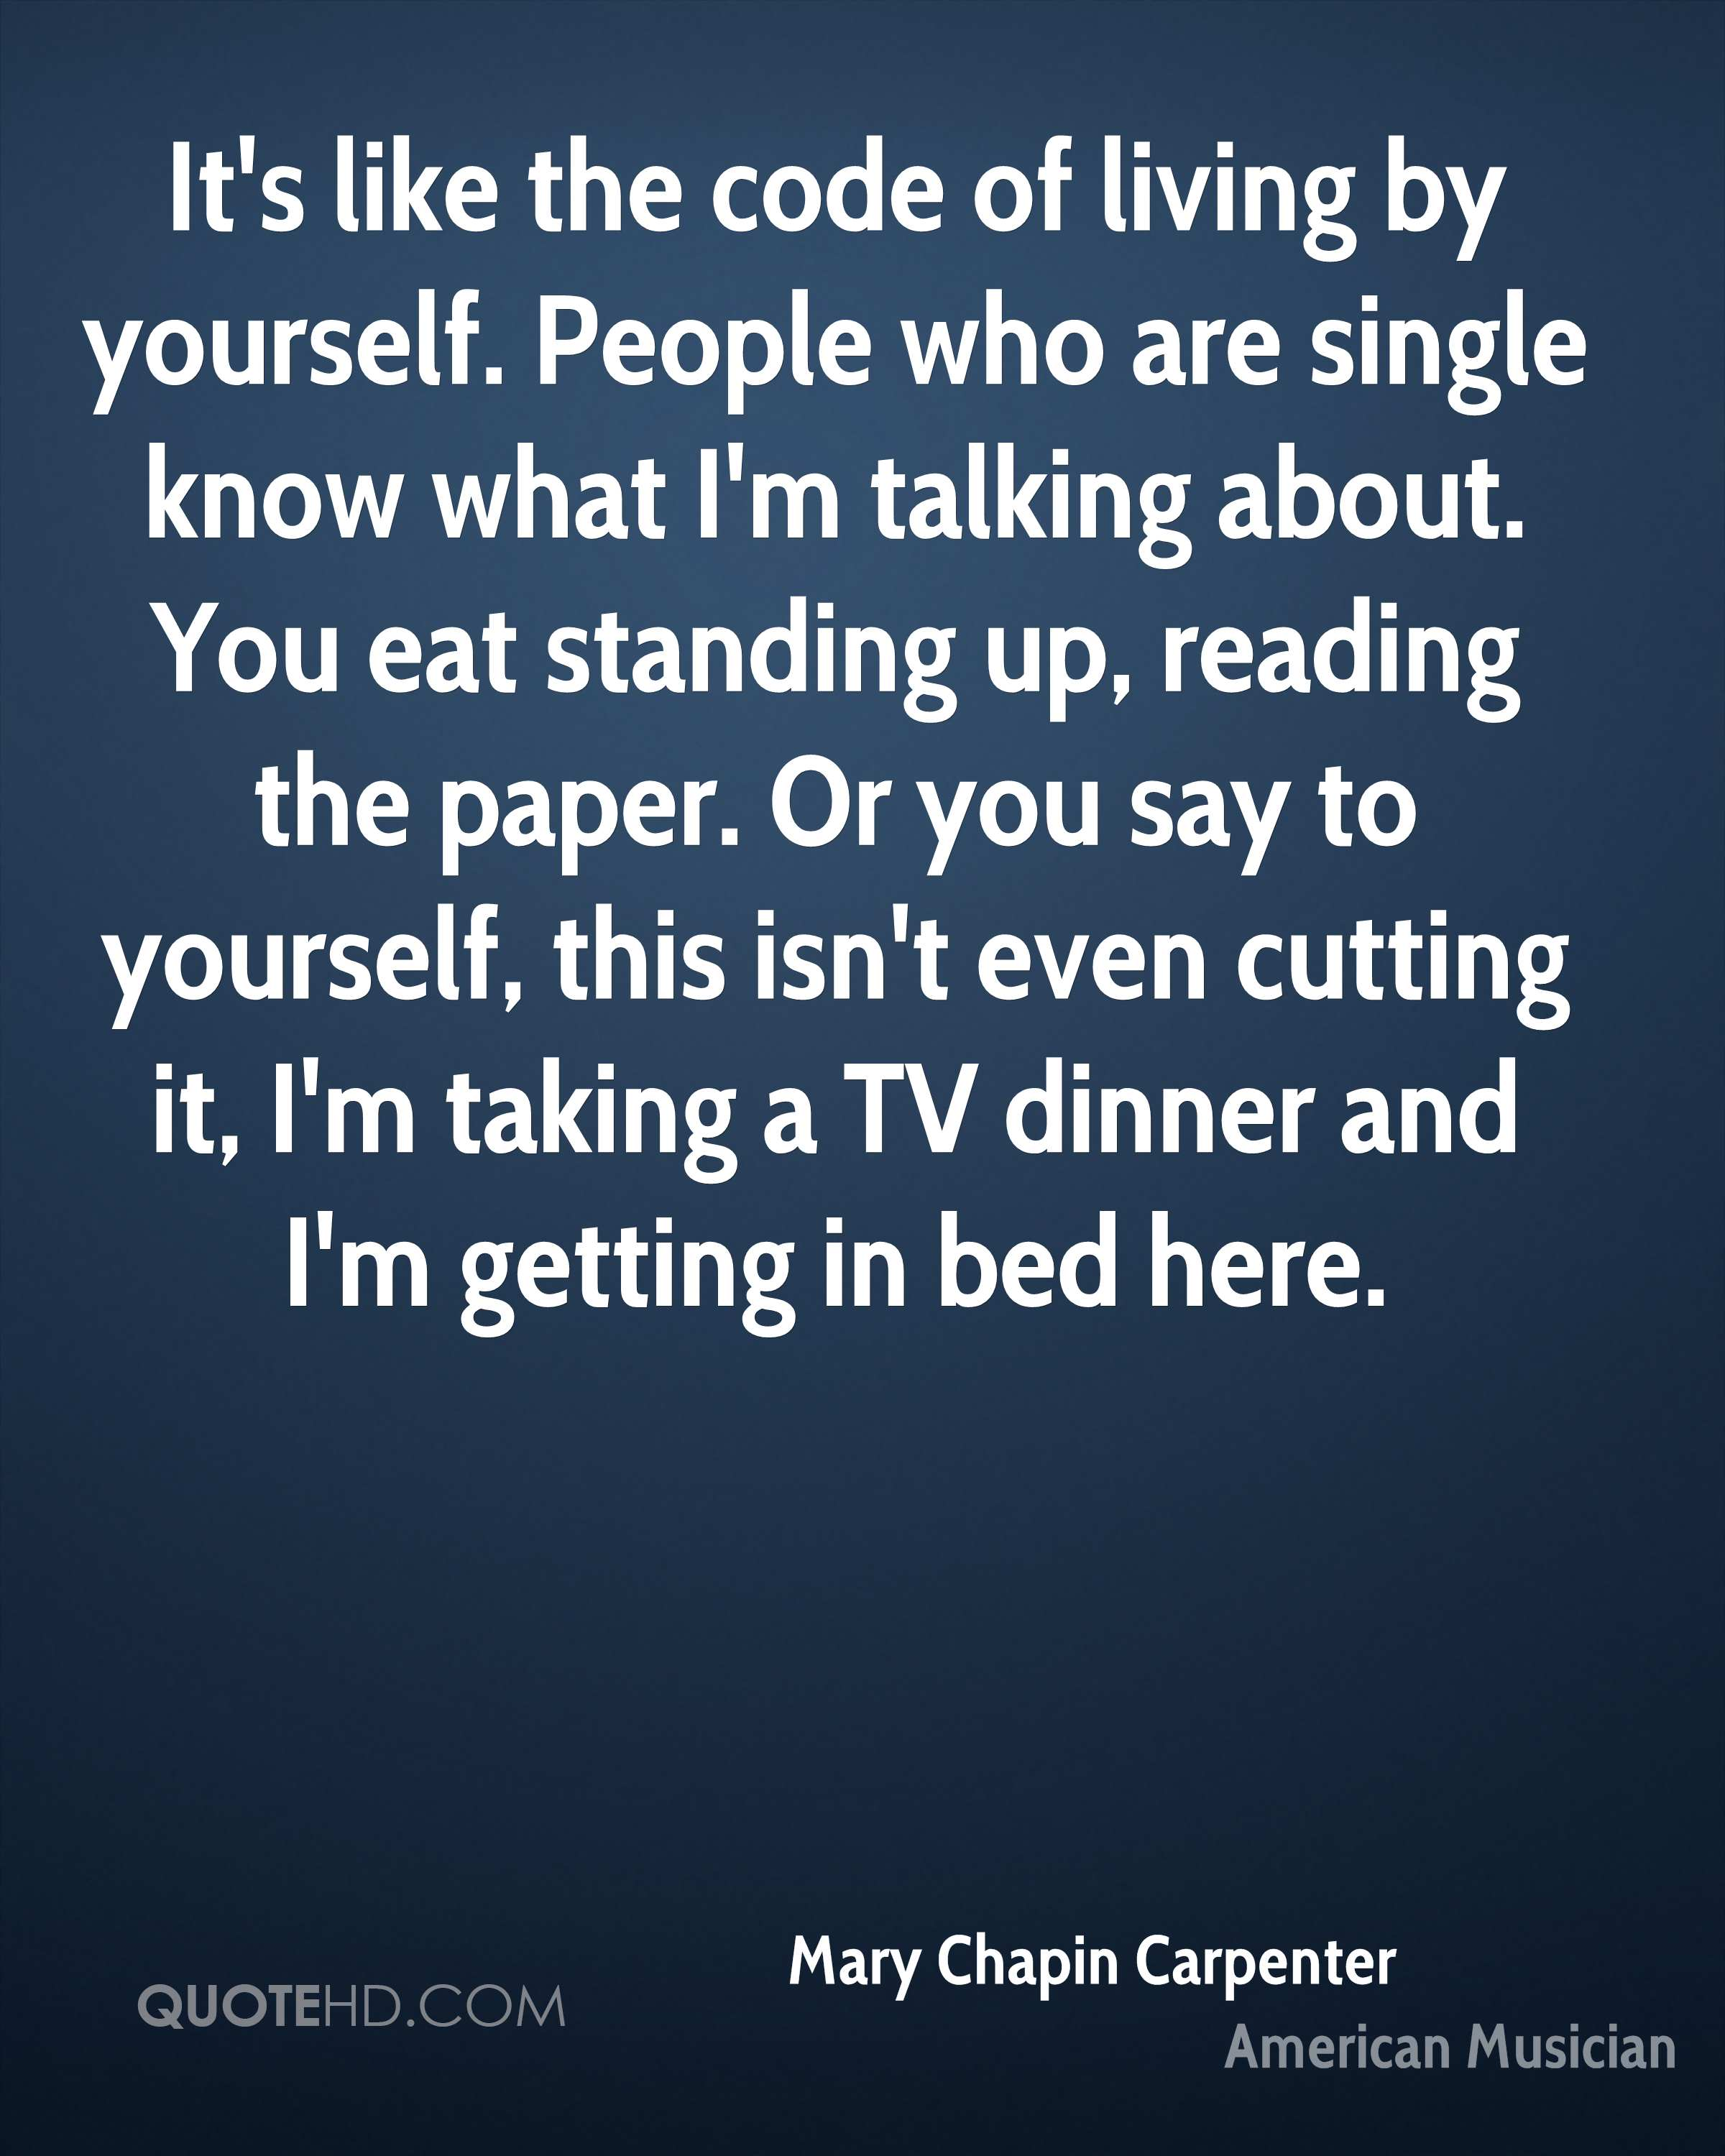 It's like the code of living by yourself. People who are single know what I'm talking about. You eat standing up, reading the paper. Or you say to yourself, this isn't even cutting it, I'm taking a TV dinner and I'm getting in bed here.